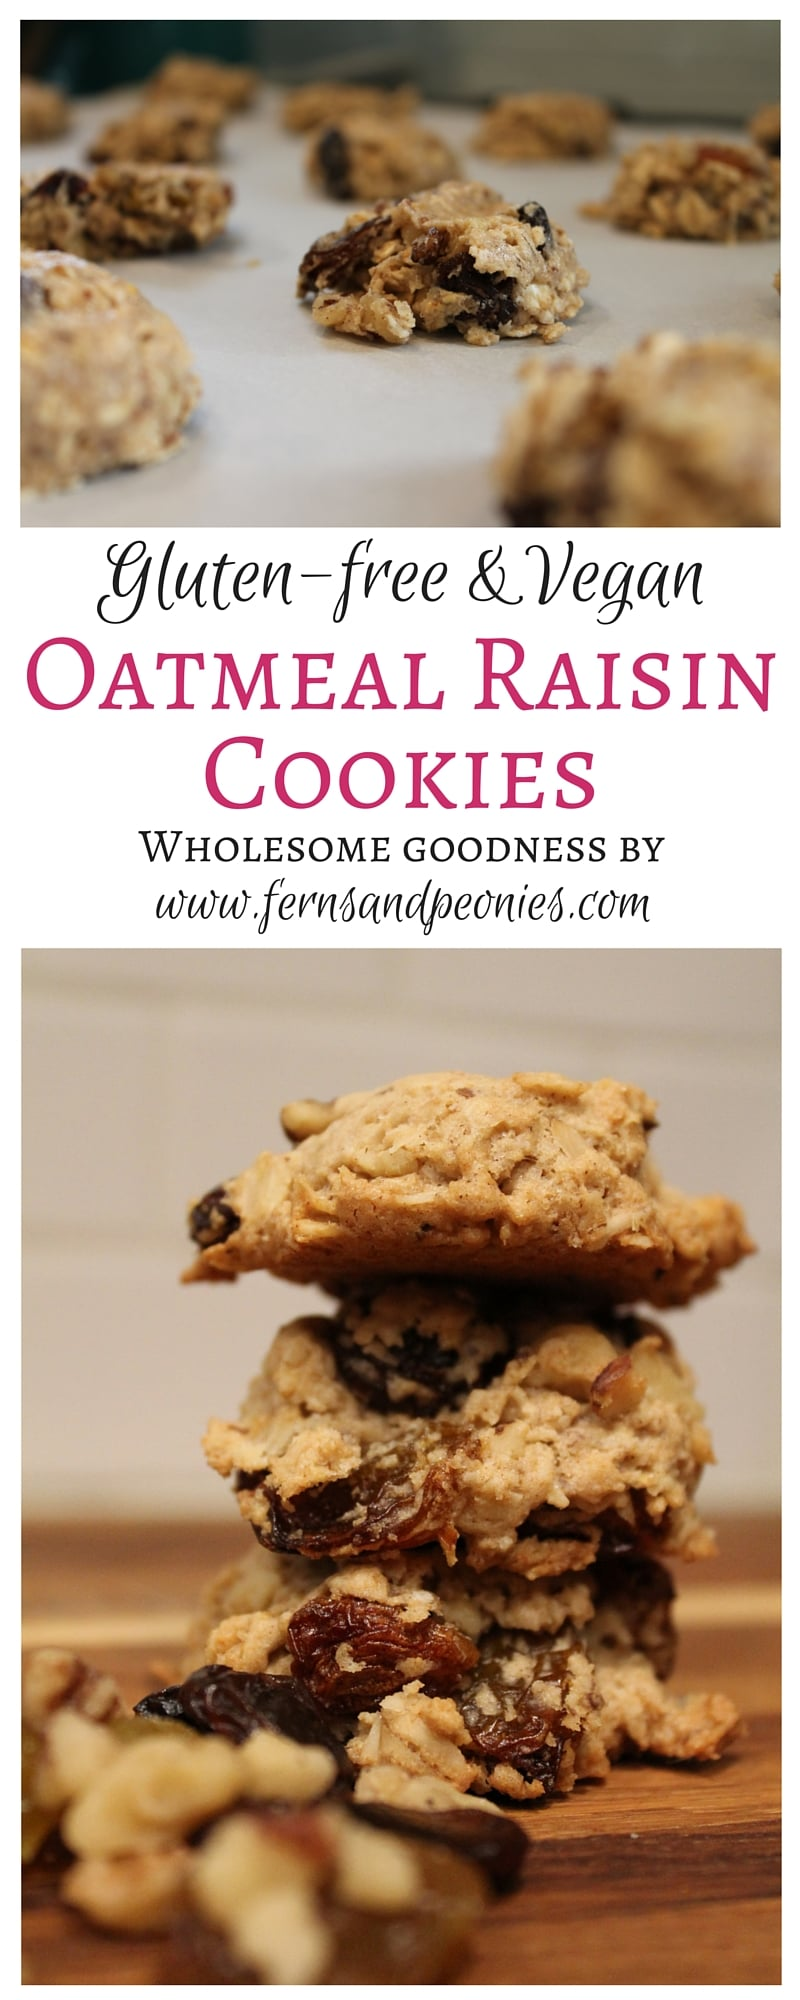 Winter Running Motivation and a Gluten-free & Vegan Oatmeal Raisin Cookie. By www.fernsandpeonies.com